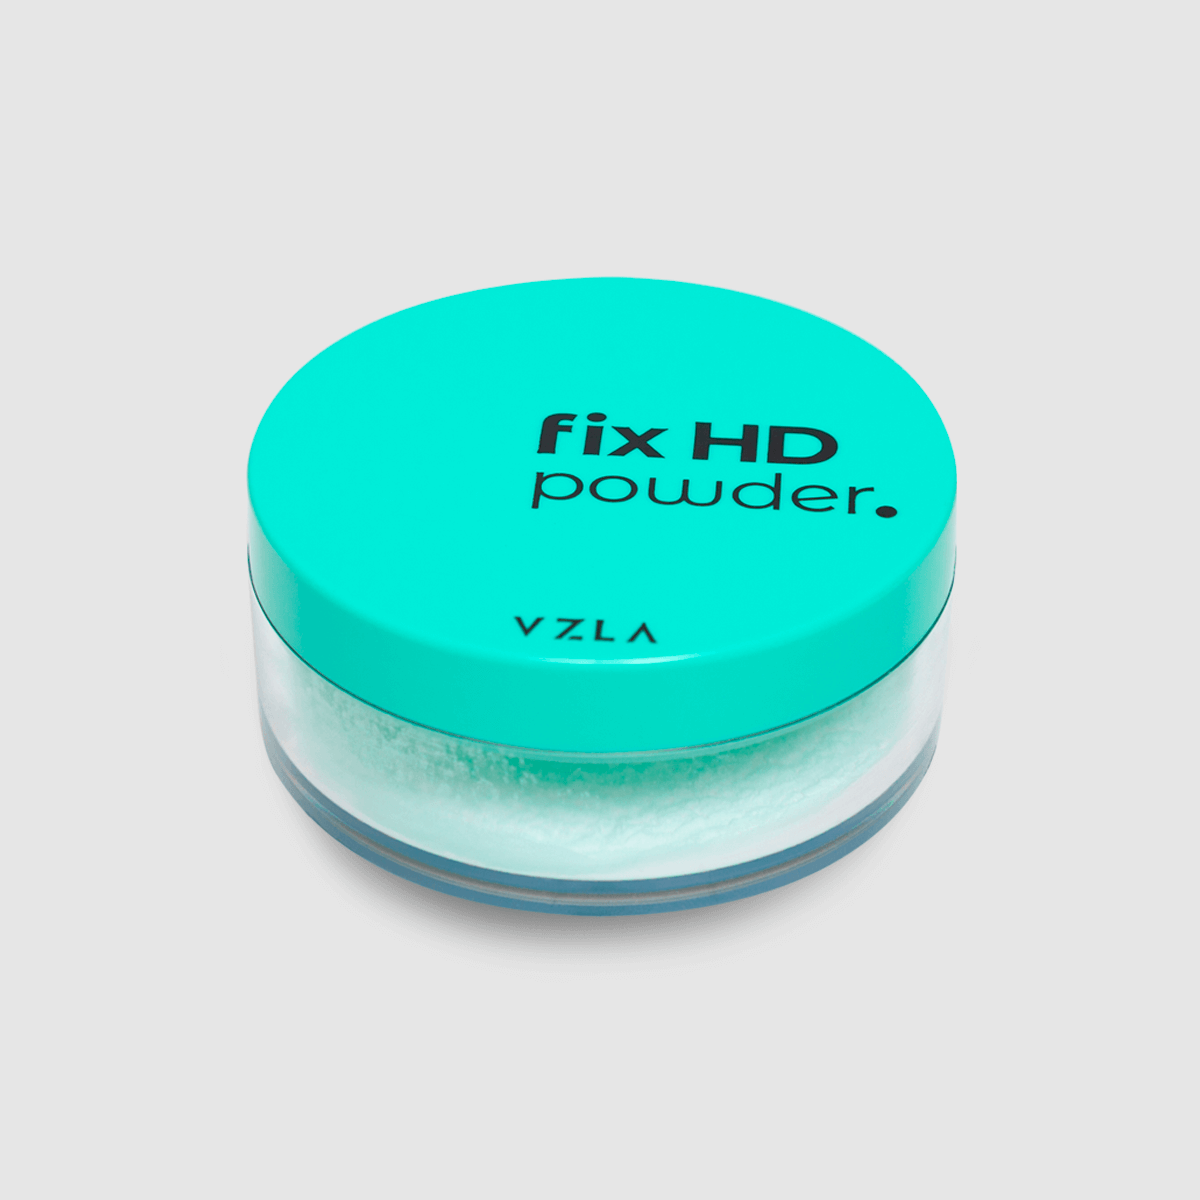 Fix HD Powder - Vizzela 9g